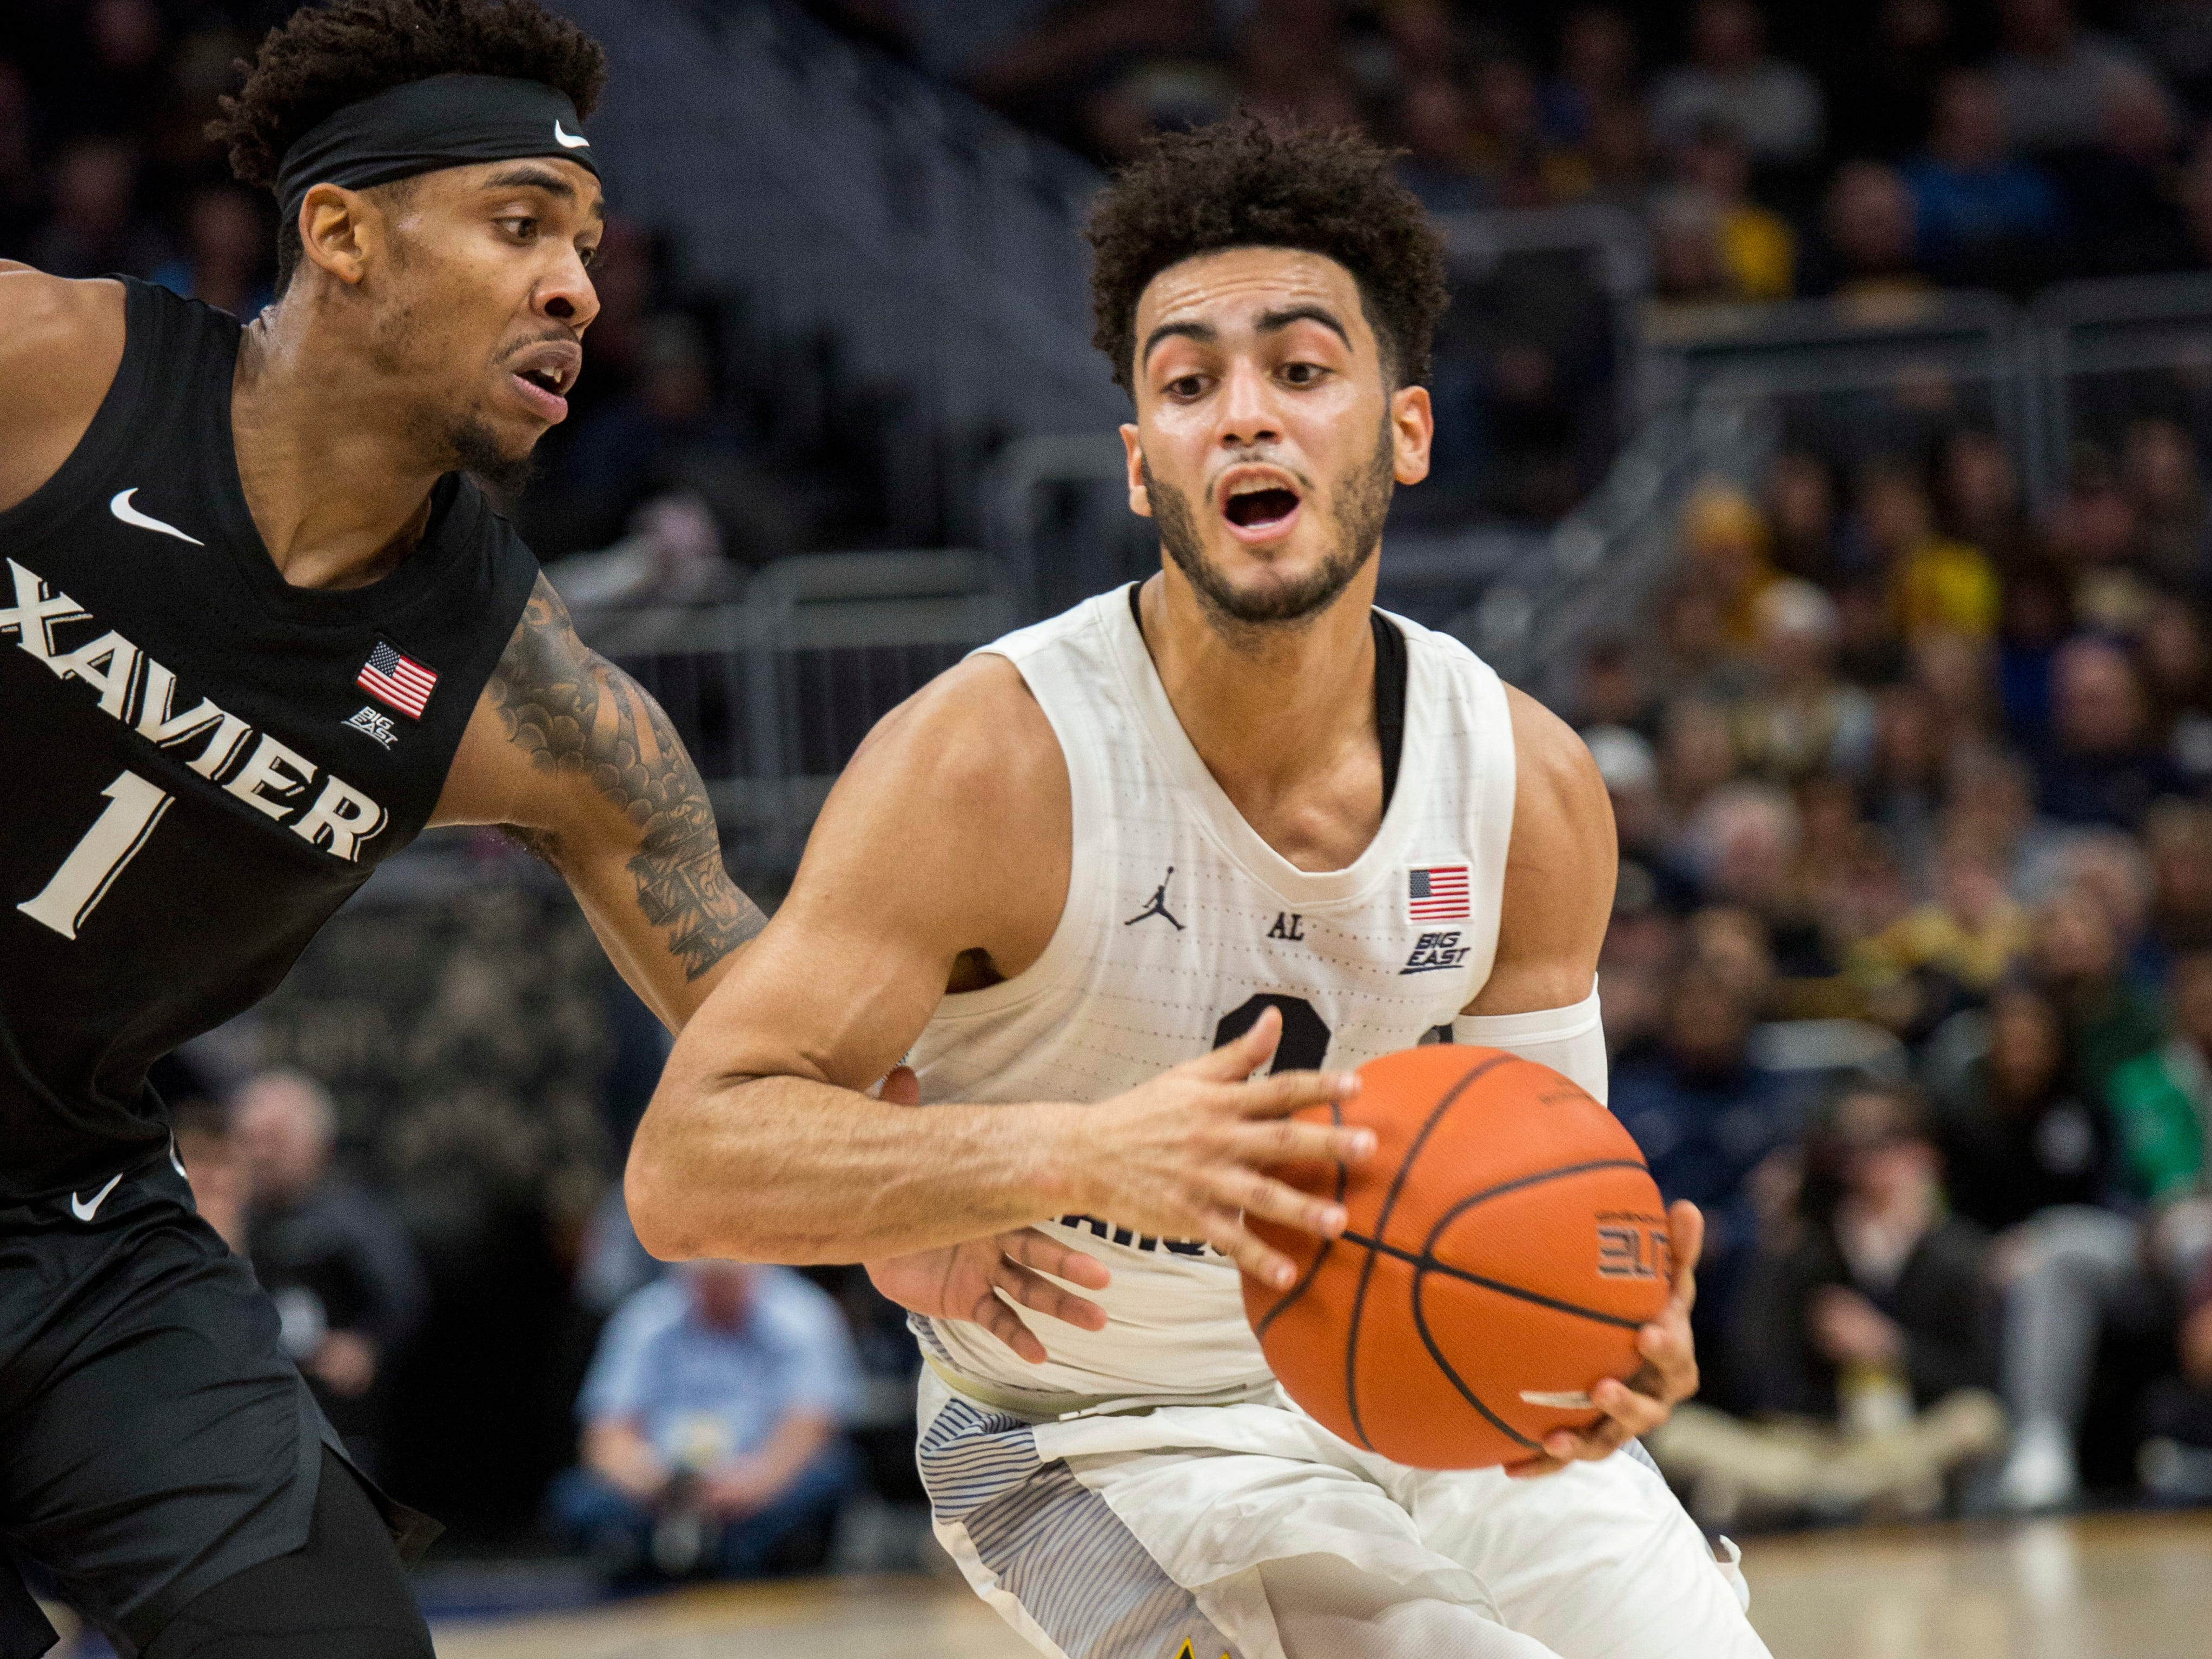 Marquette guard Markus Howard, who scored a game-high 26-pionts,  drives to the basket against Xavier guard Paul Scruggs on Sunday.